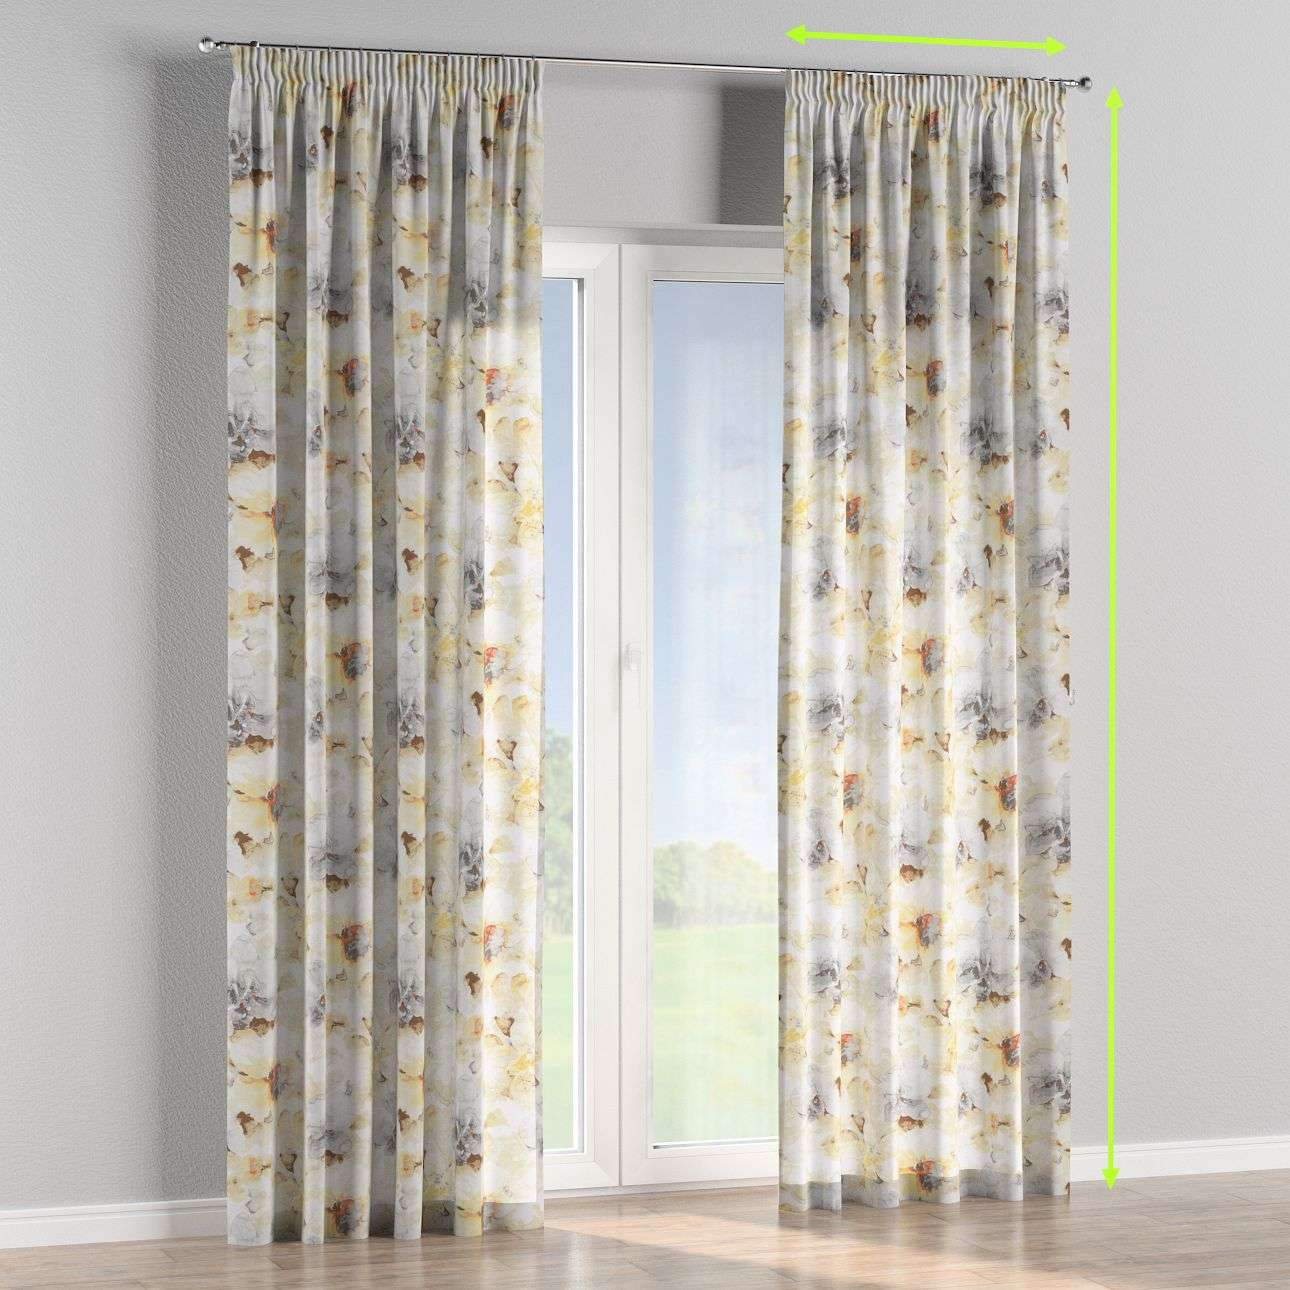 Pencil pleat curtains in collection Acapulco, fabric: 141-33